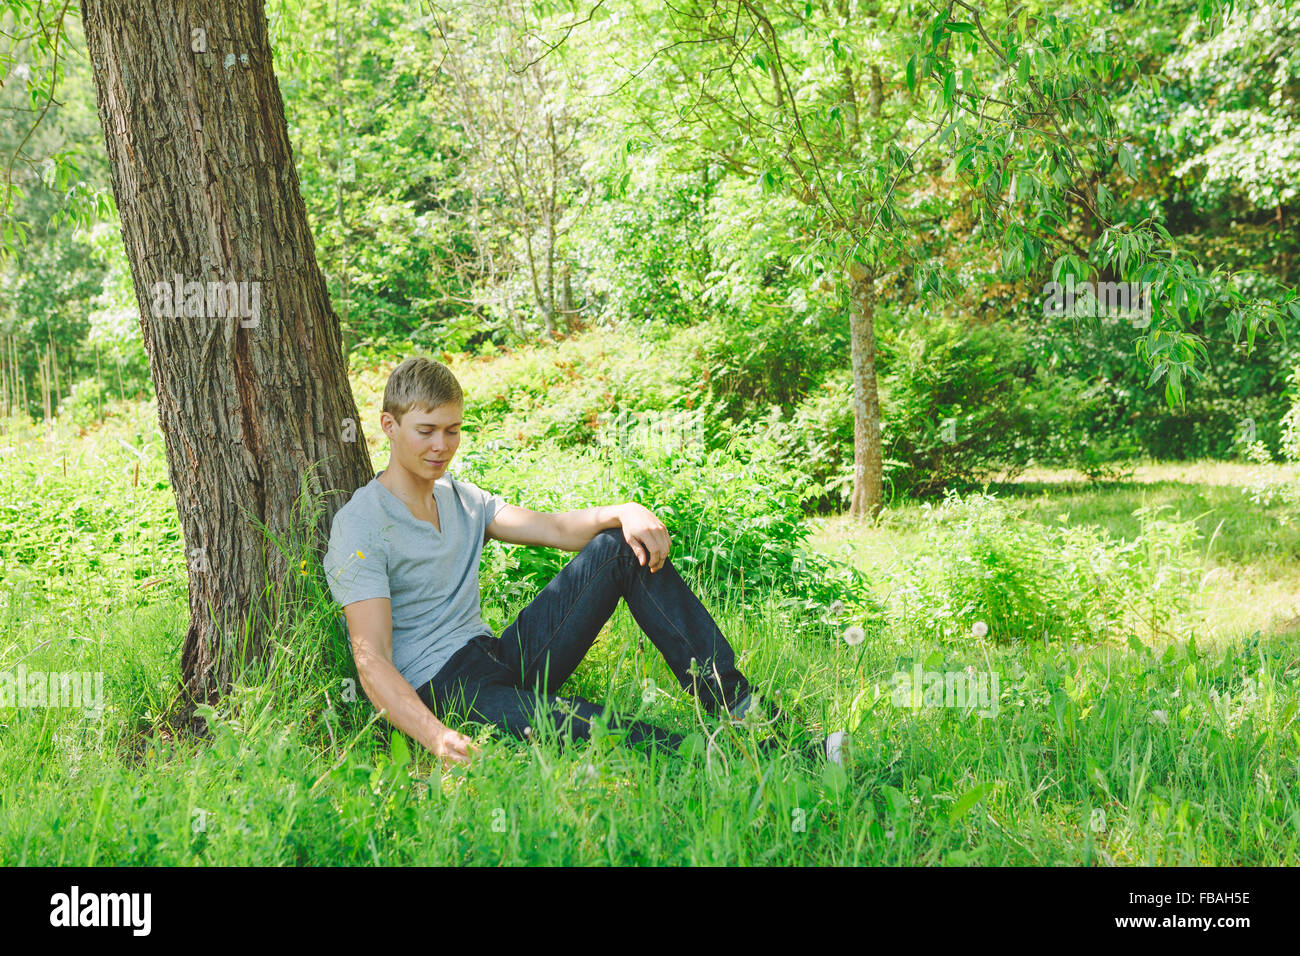 Finland, Helsinki, Aggelby, Young man sitting in grass under tree - Stock Image